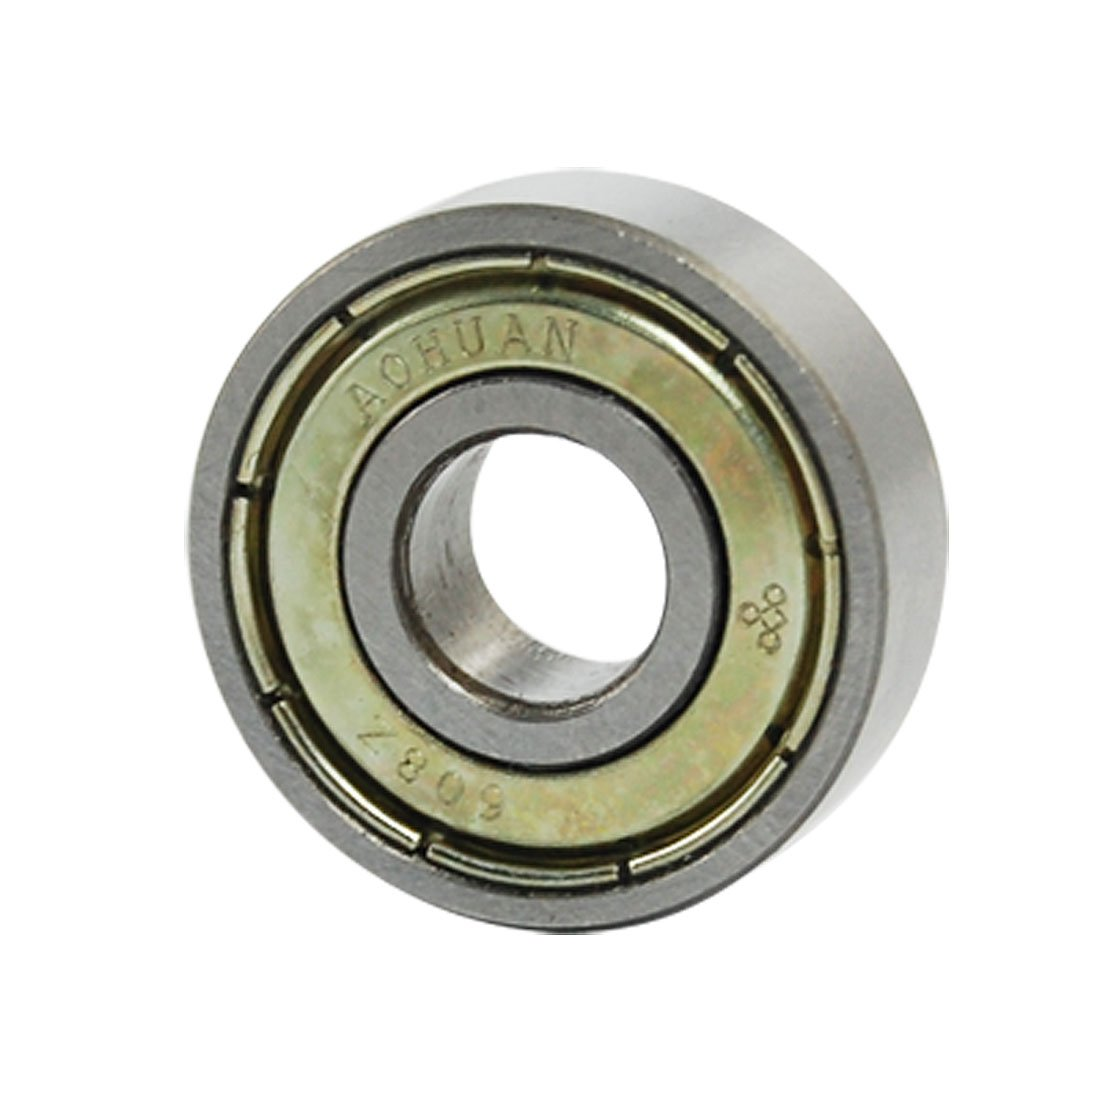 Uxcell a11093000ux0510 608Z 8mm x 22mm x 7mm Shielded Deep Groove Ball Bearing, 0.32 Stainless Steel